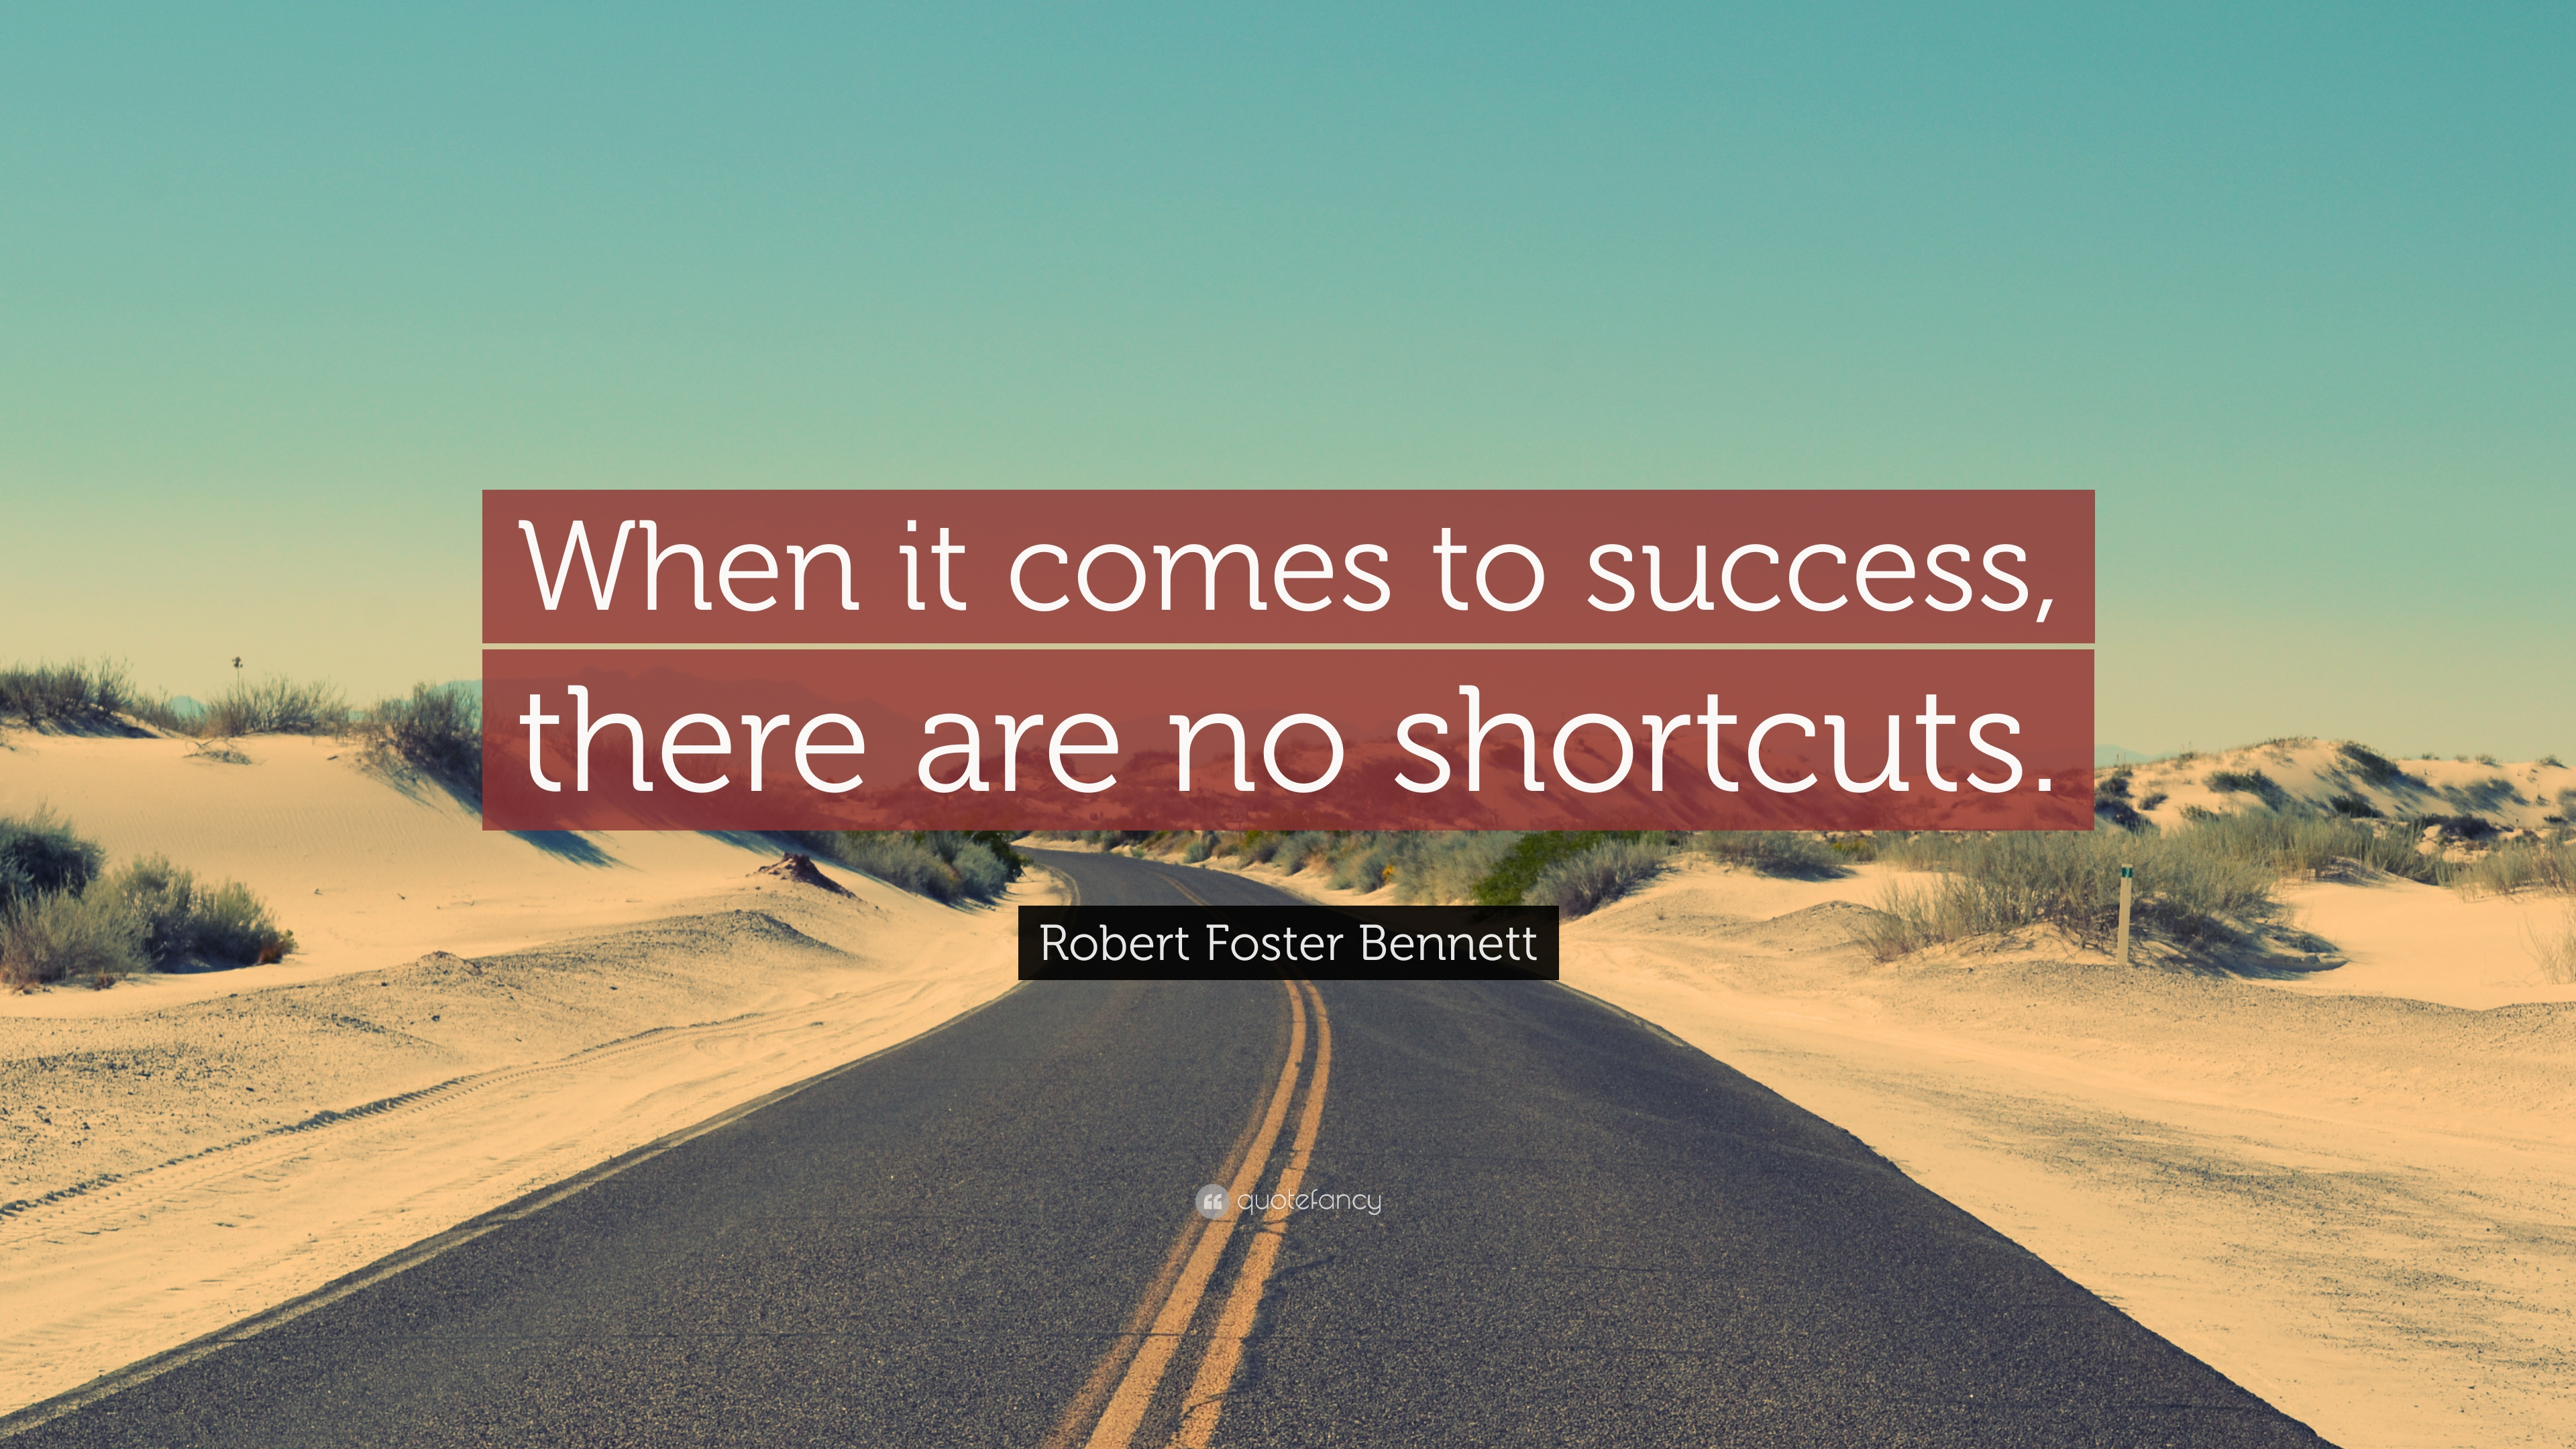 Robert Foster Bennett Quote When It Comes To Success There Are No